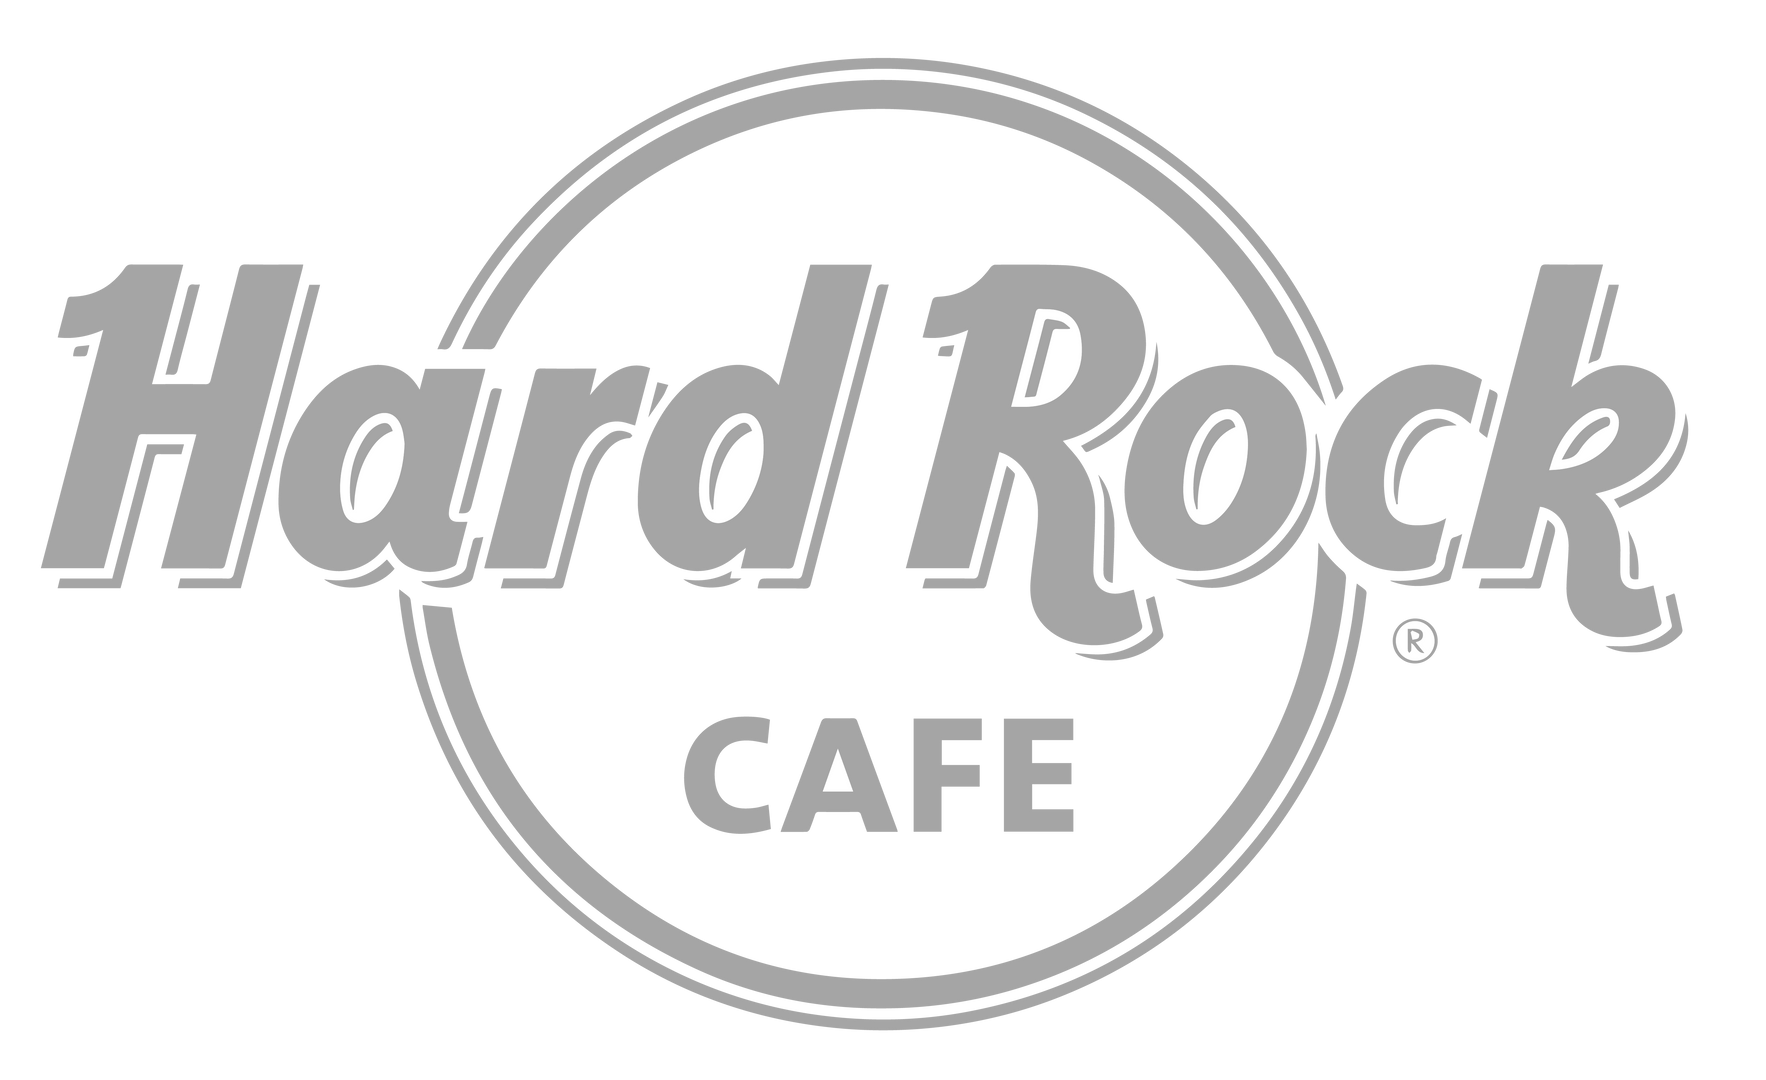 Logo_Hard_Rock_Cafe_neutral.svg gris-01.